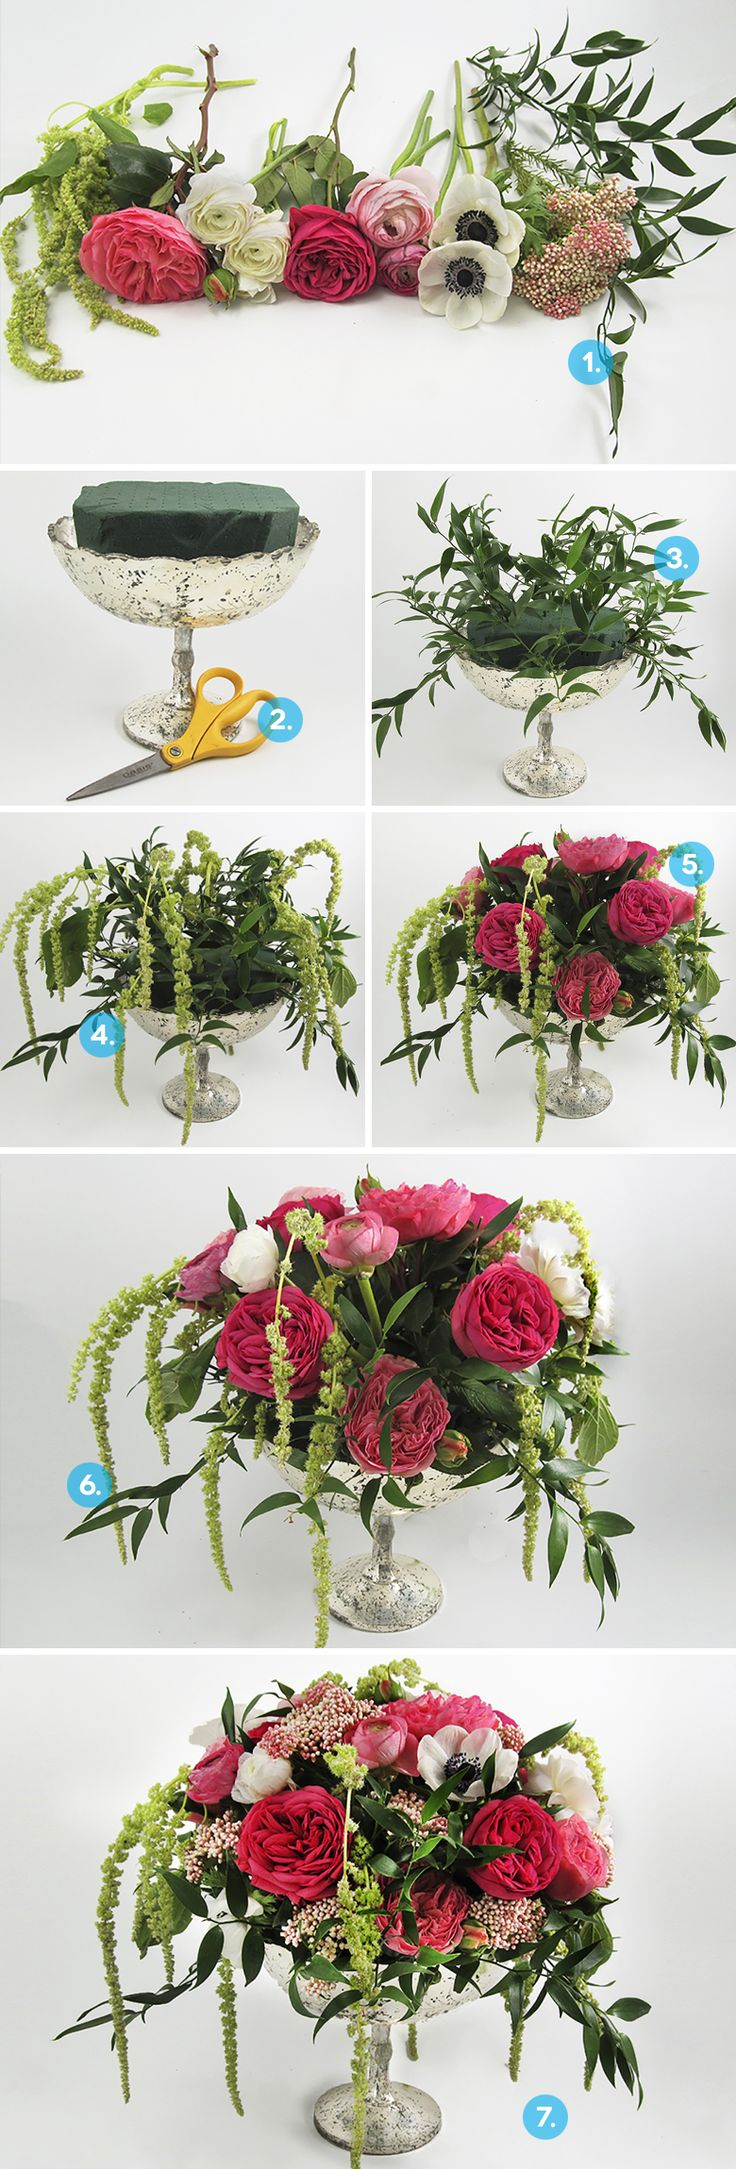 How To Create A DIY Anemone Centerpiece